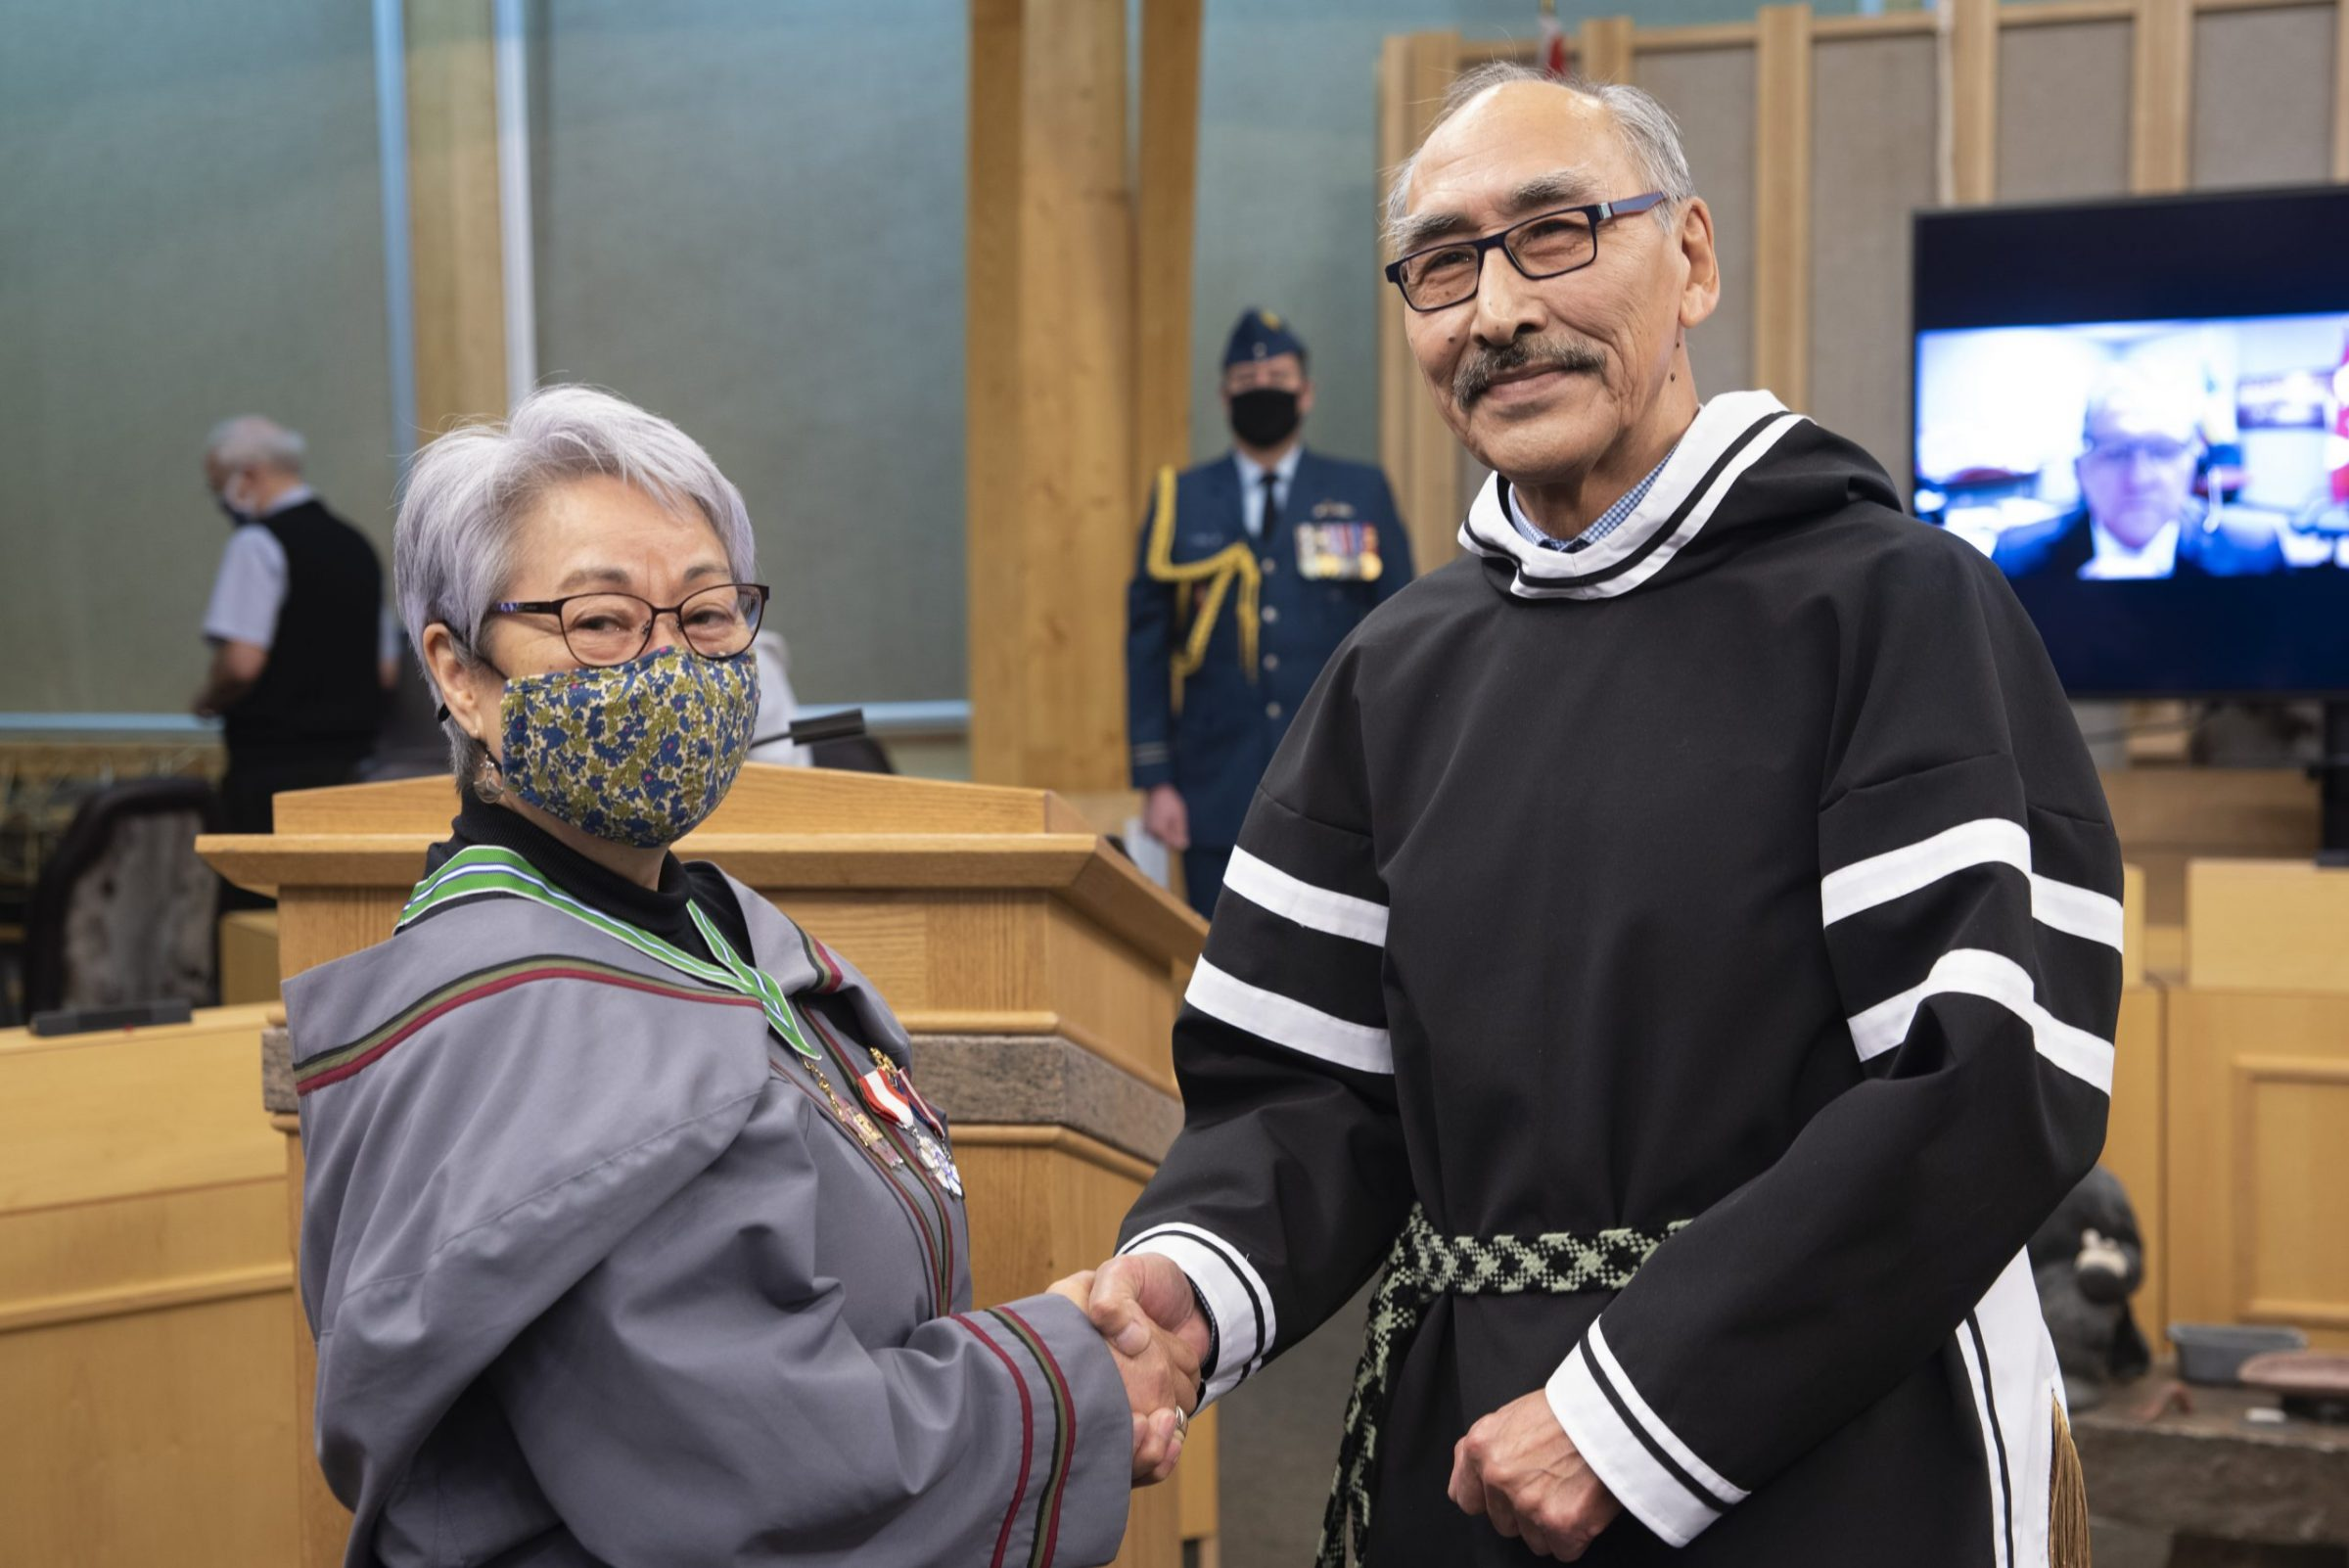 Eva Aariak is congratulated by Speaker Paul Quassa after being sworn in as the sixth commissioner of Nunavut during a ceremony inside the territorial legislature Wednesday. Aariak was also awarded with the Order of Nunavut during the ceremony. Attendees included Premier Joe Savikataaq, Nunavut Chief Justice Neil Sharkey and, by video-conference, Dan Vandal, the federal minister of northern affairs. (Photo courtesy of Michel Albert)